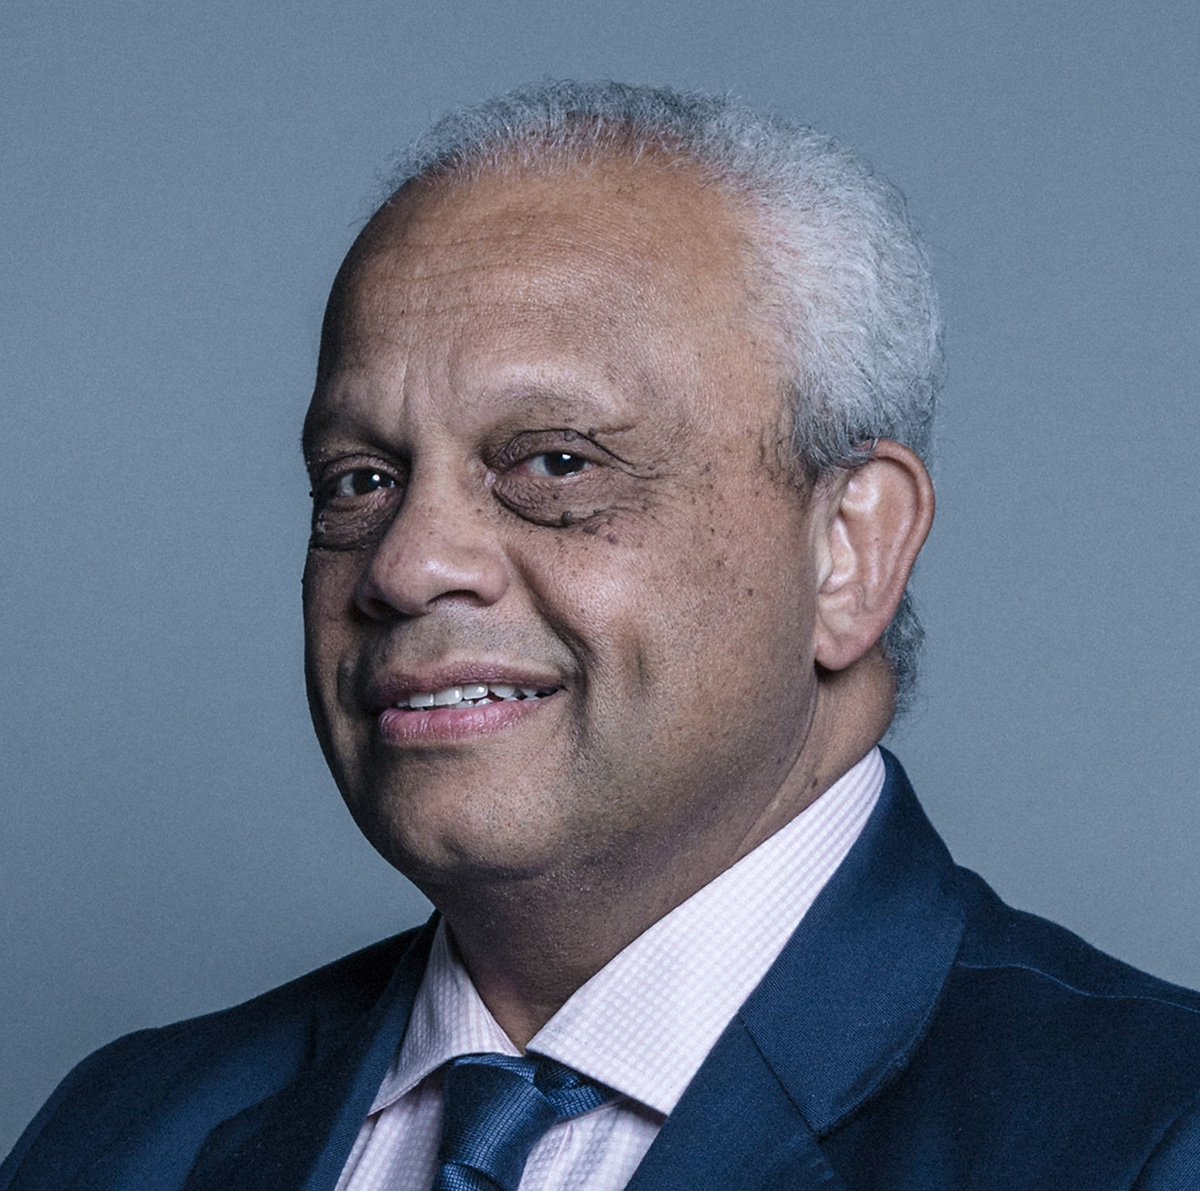 Official portrait of Lord Hastings of Scarisbrick. Photo: Chris McAndrew